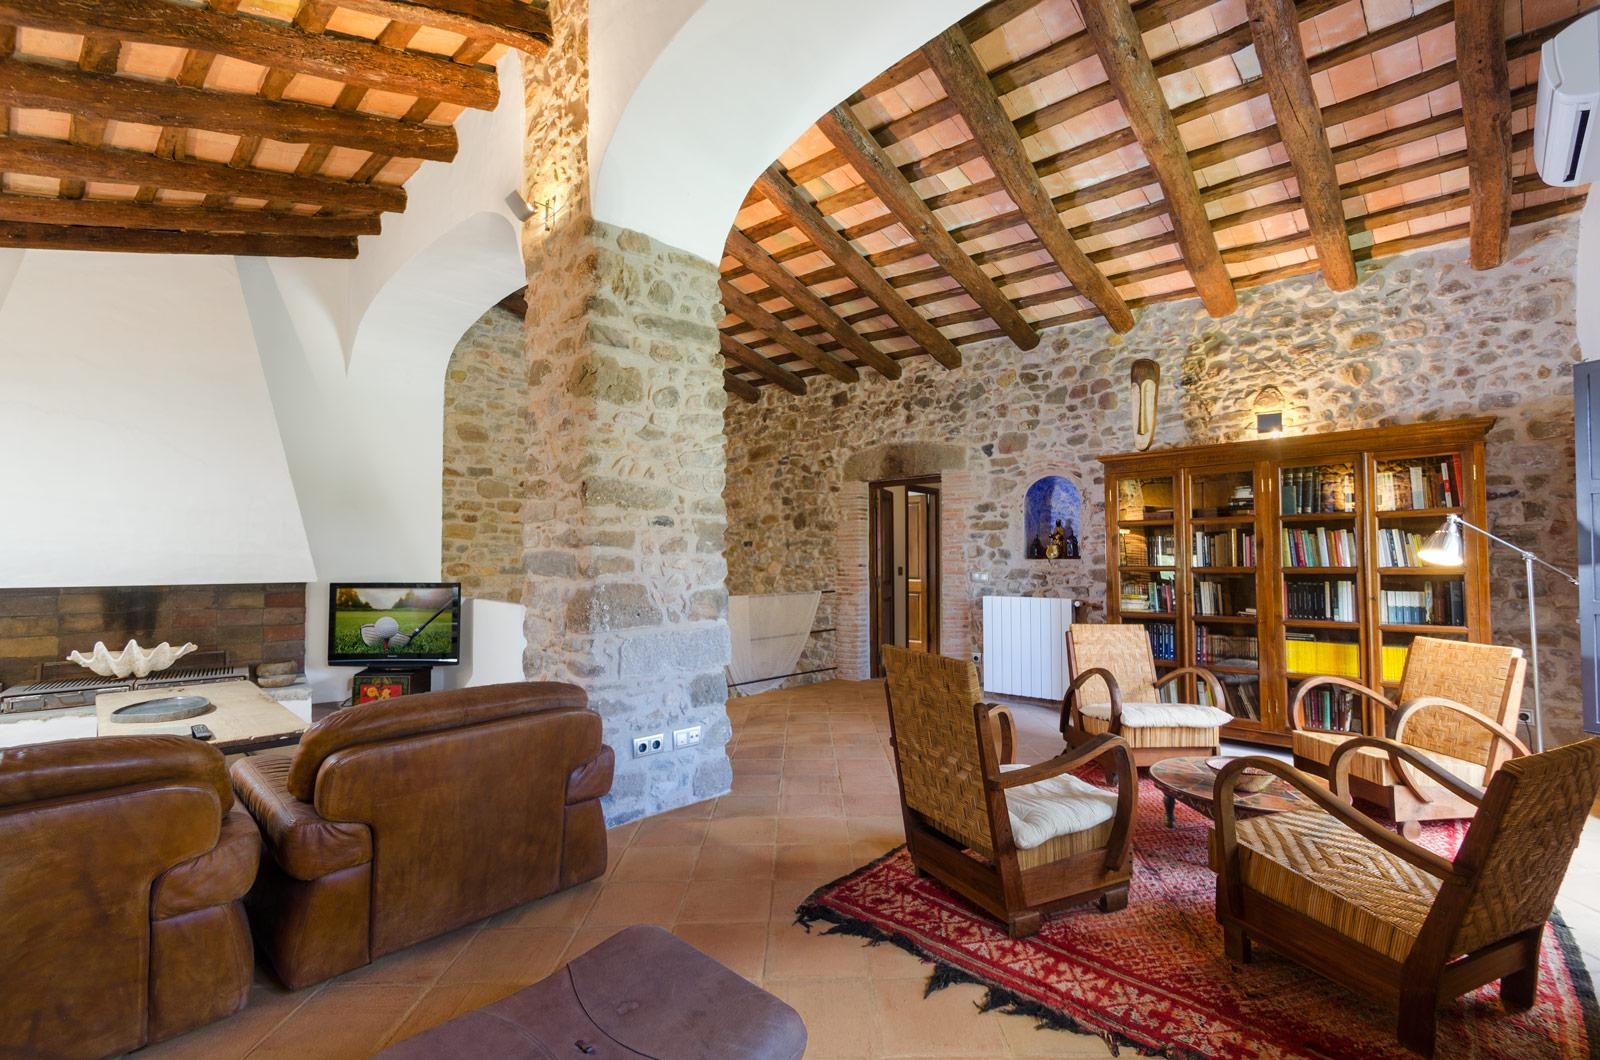 12. Villa for sale in Girona - Traditional Masia, Catalonia country house, for sale in Girona